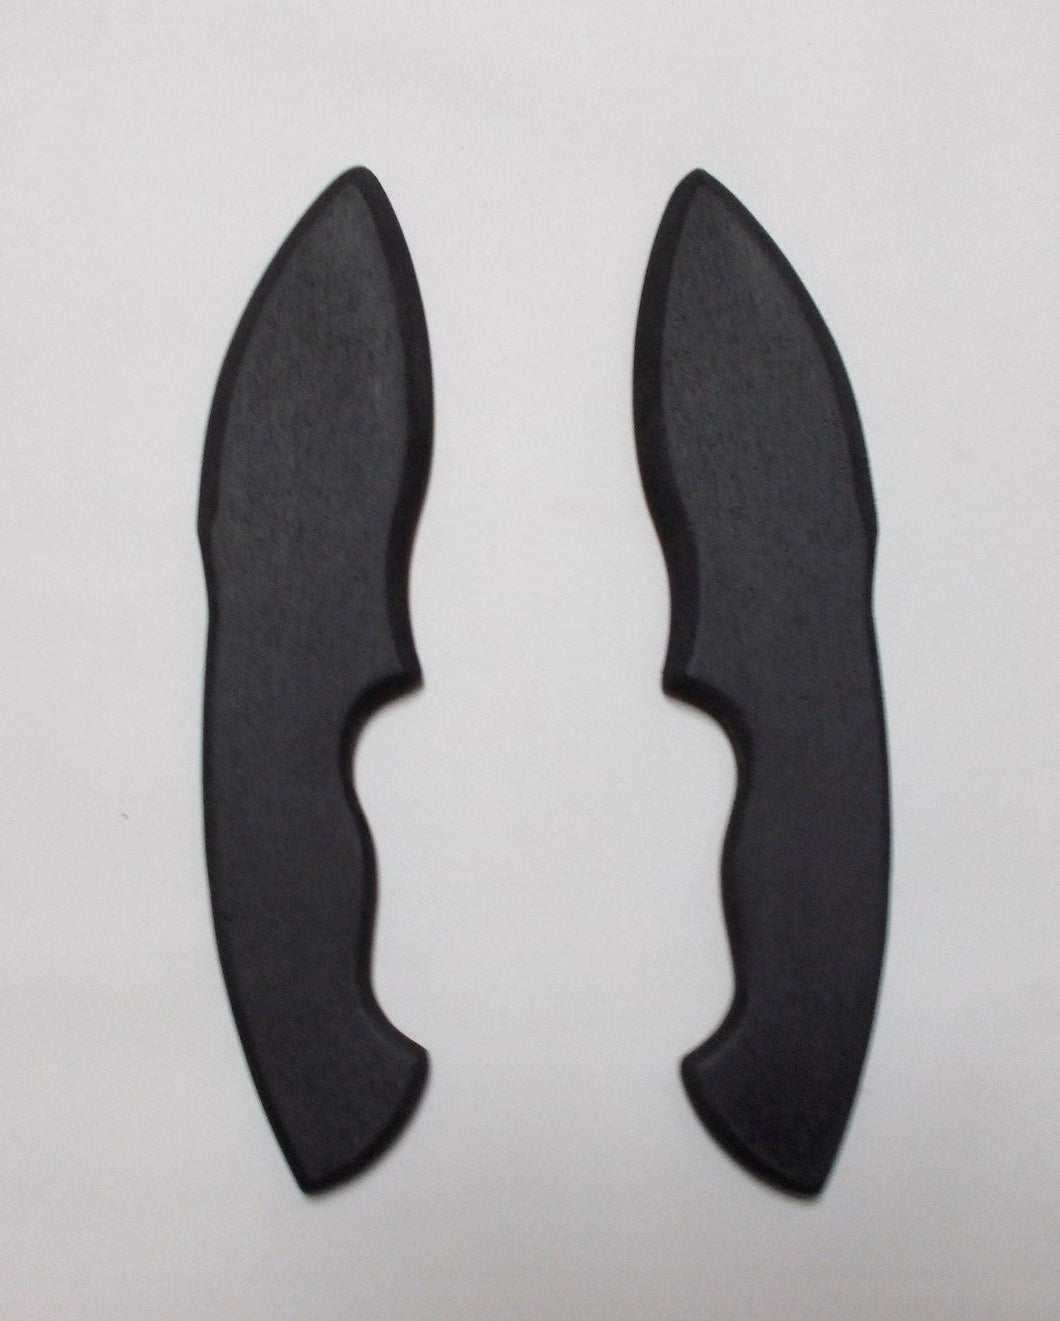 Training Double Daggers Polypropylene Knives Knife Defense SF Tactical Kali